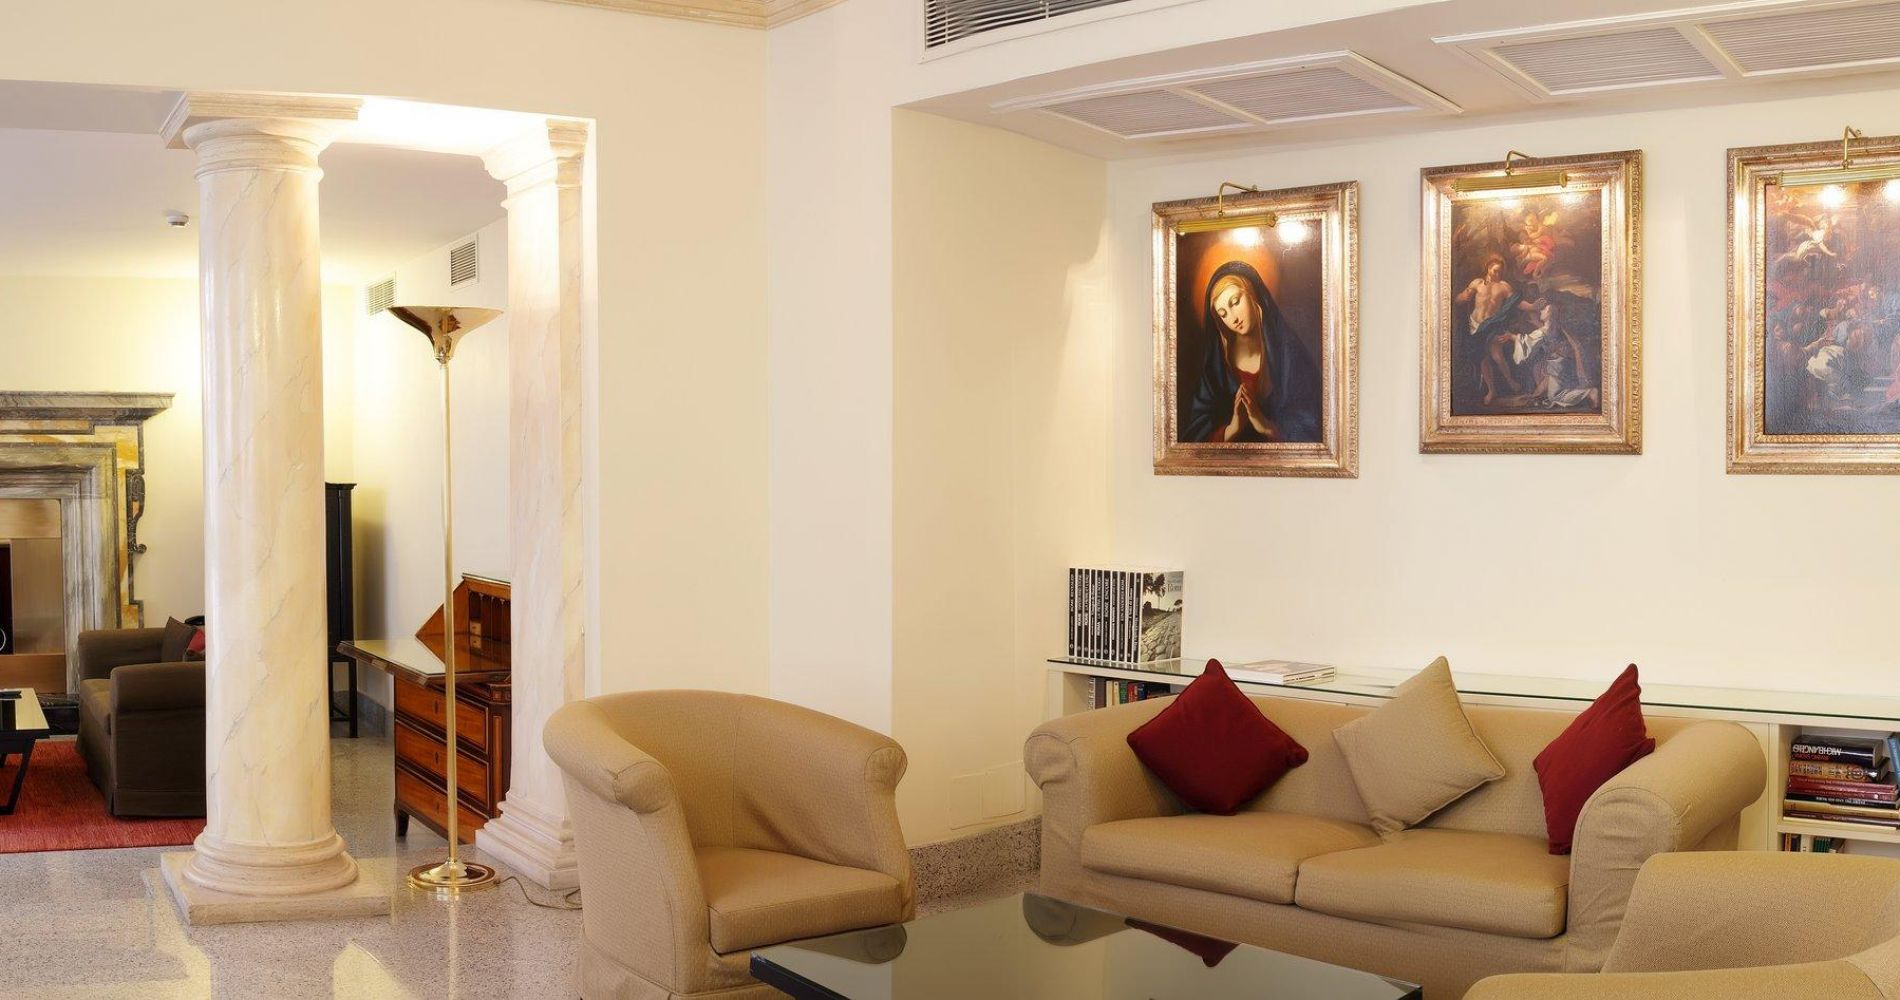 Albergo Santa Chiara Albergo Santa Chiara Hotel Rome Best Hotels And Overnight Stays